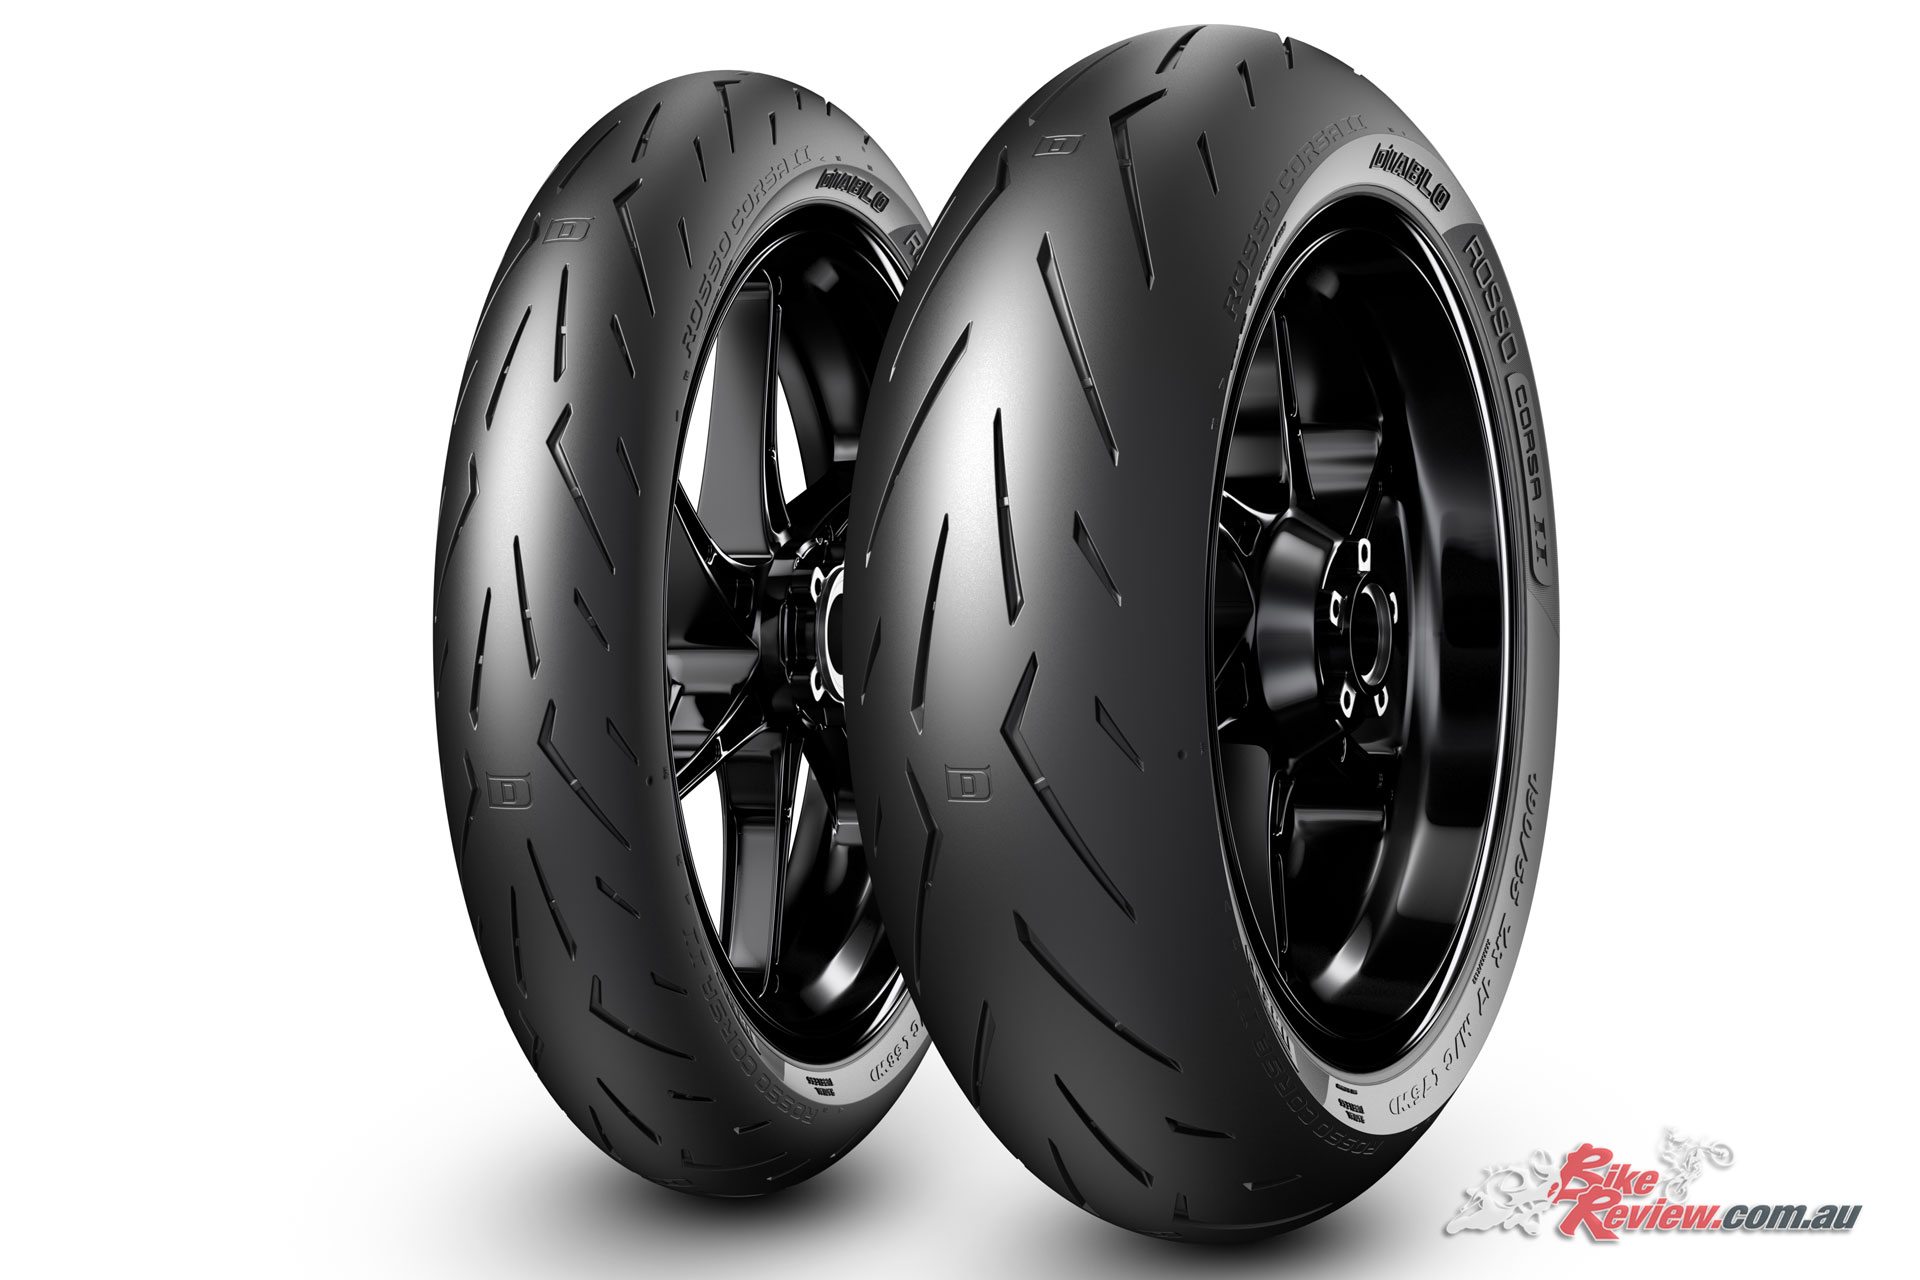 The Pirelli Diablo Rosso II builds on the original tyres performance, with some dramatic gains